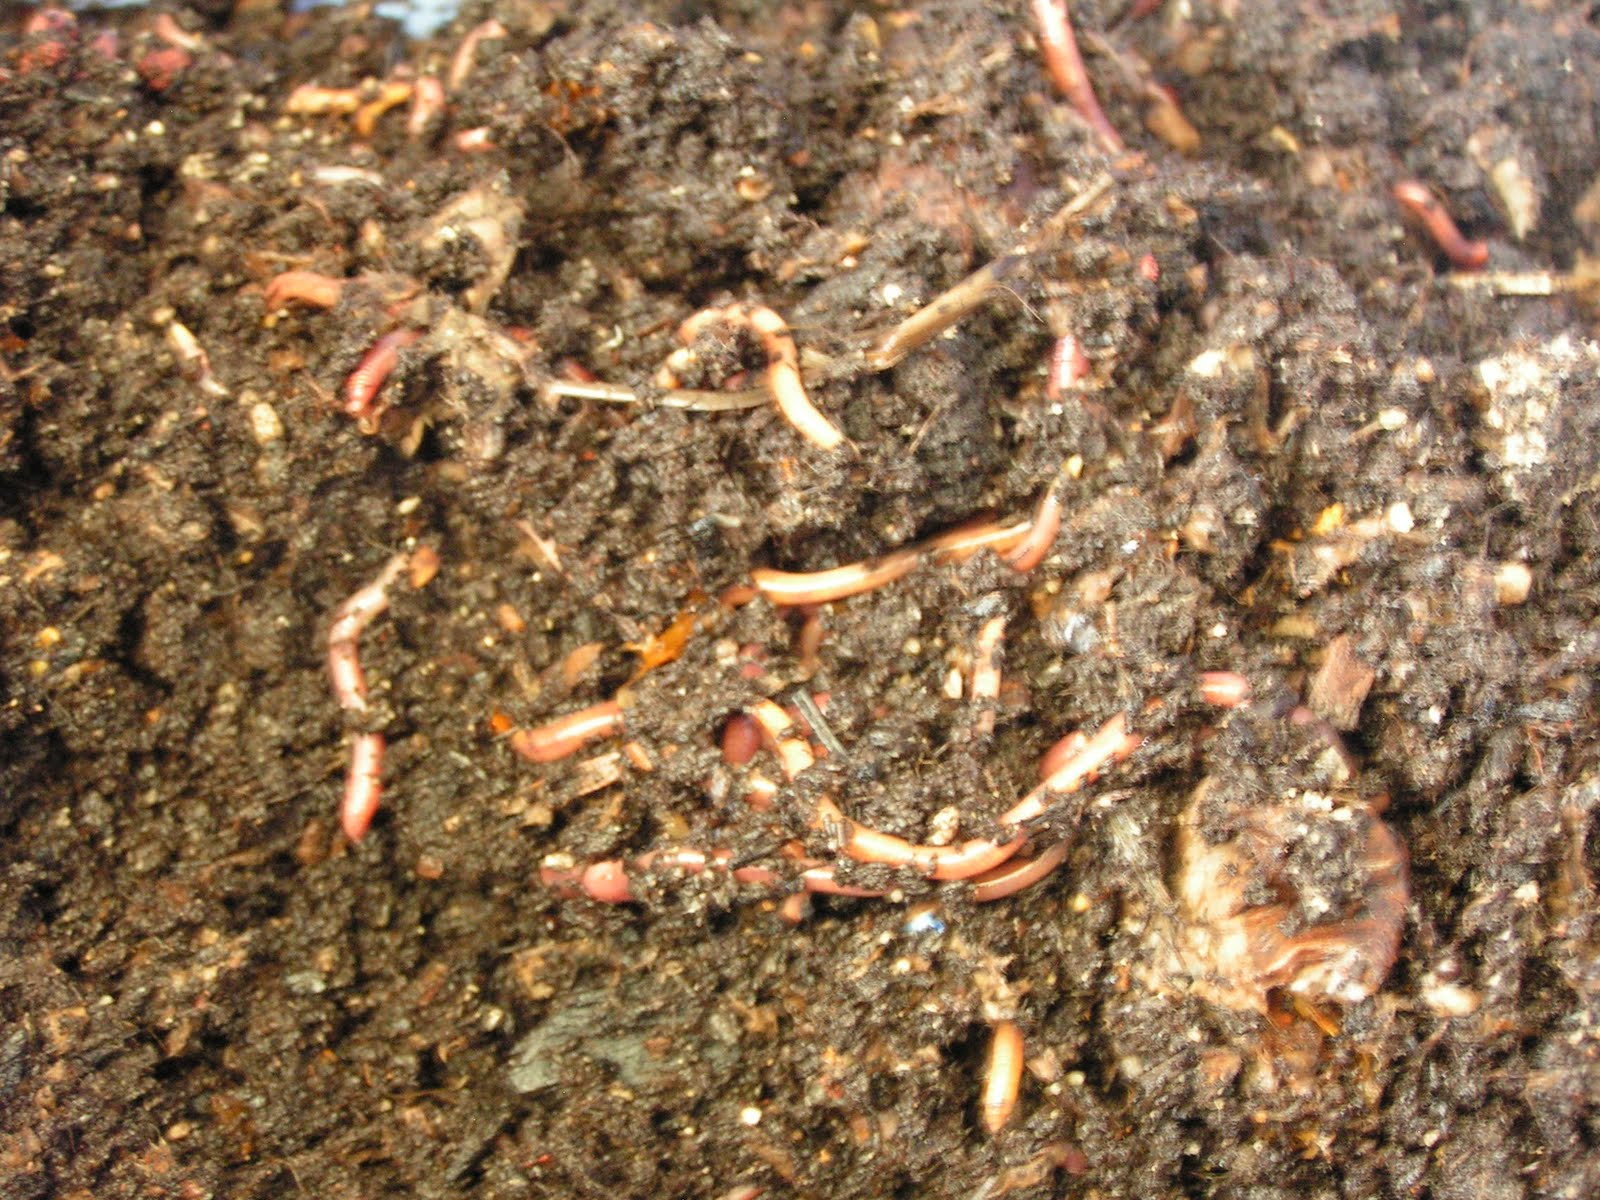 Rambling Anne: Vermicomposting and Cocoons